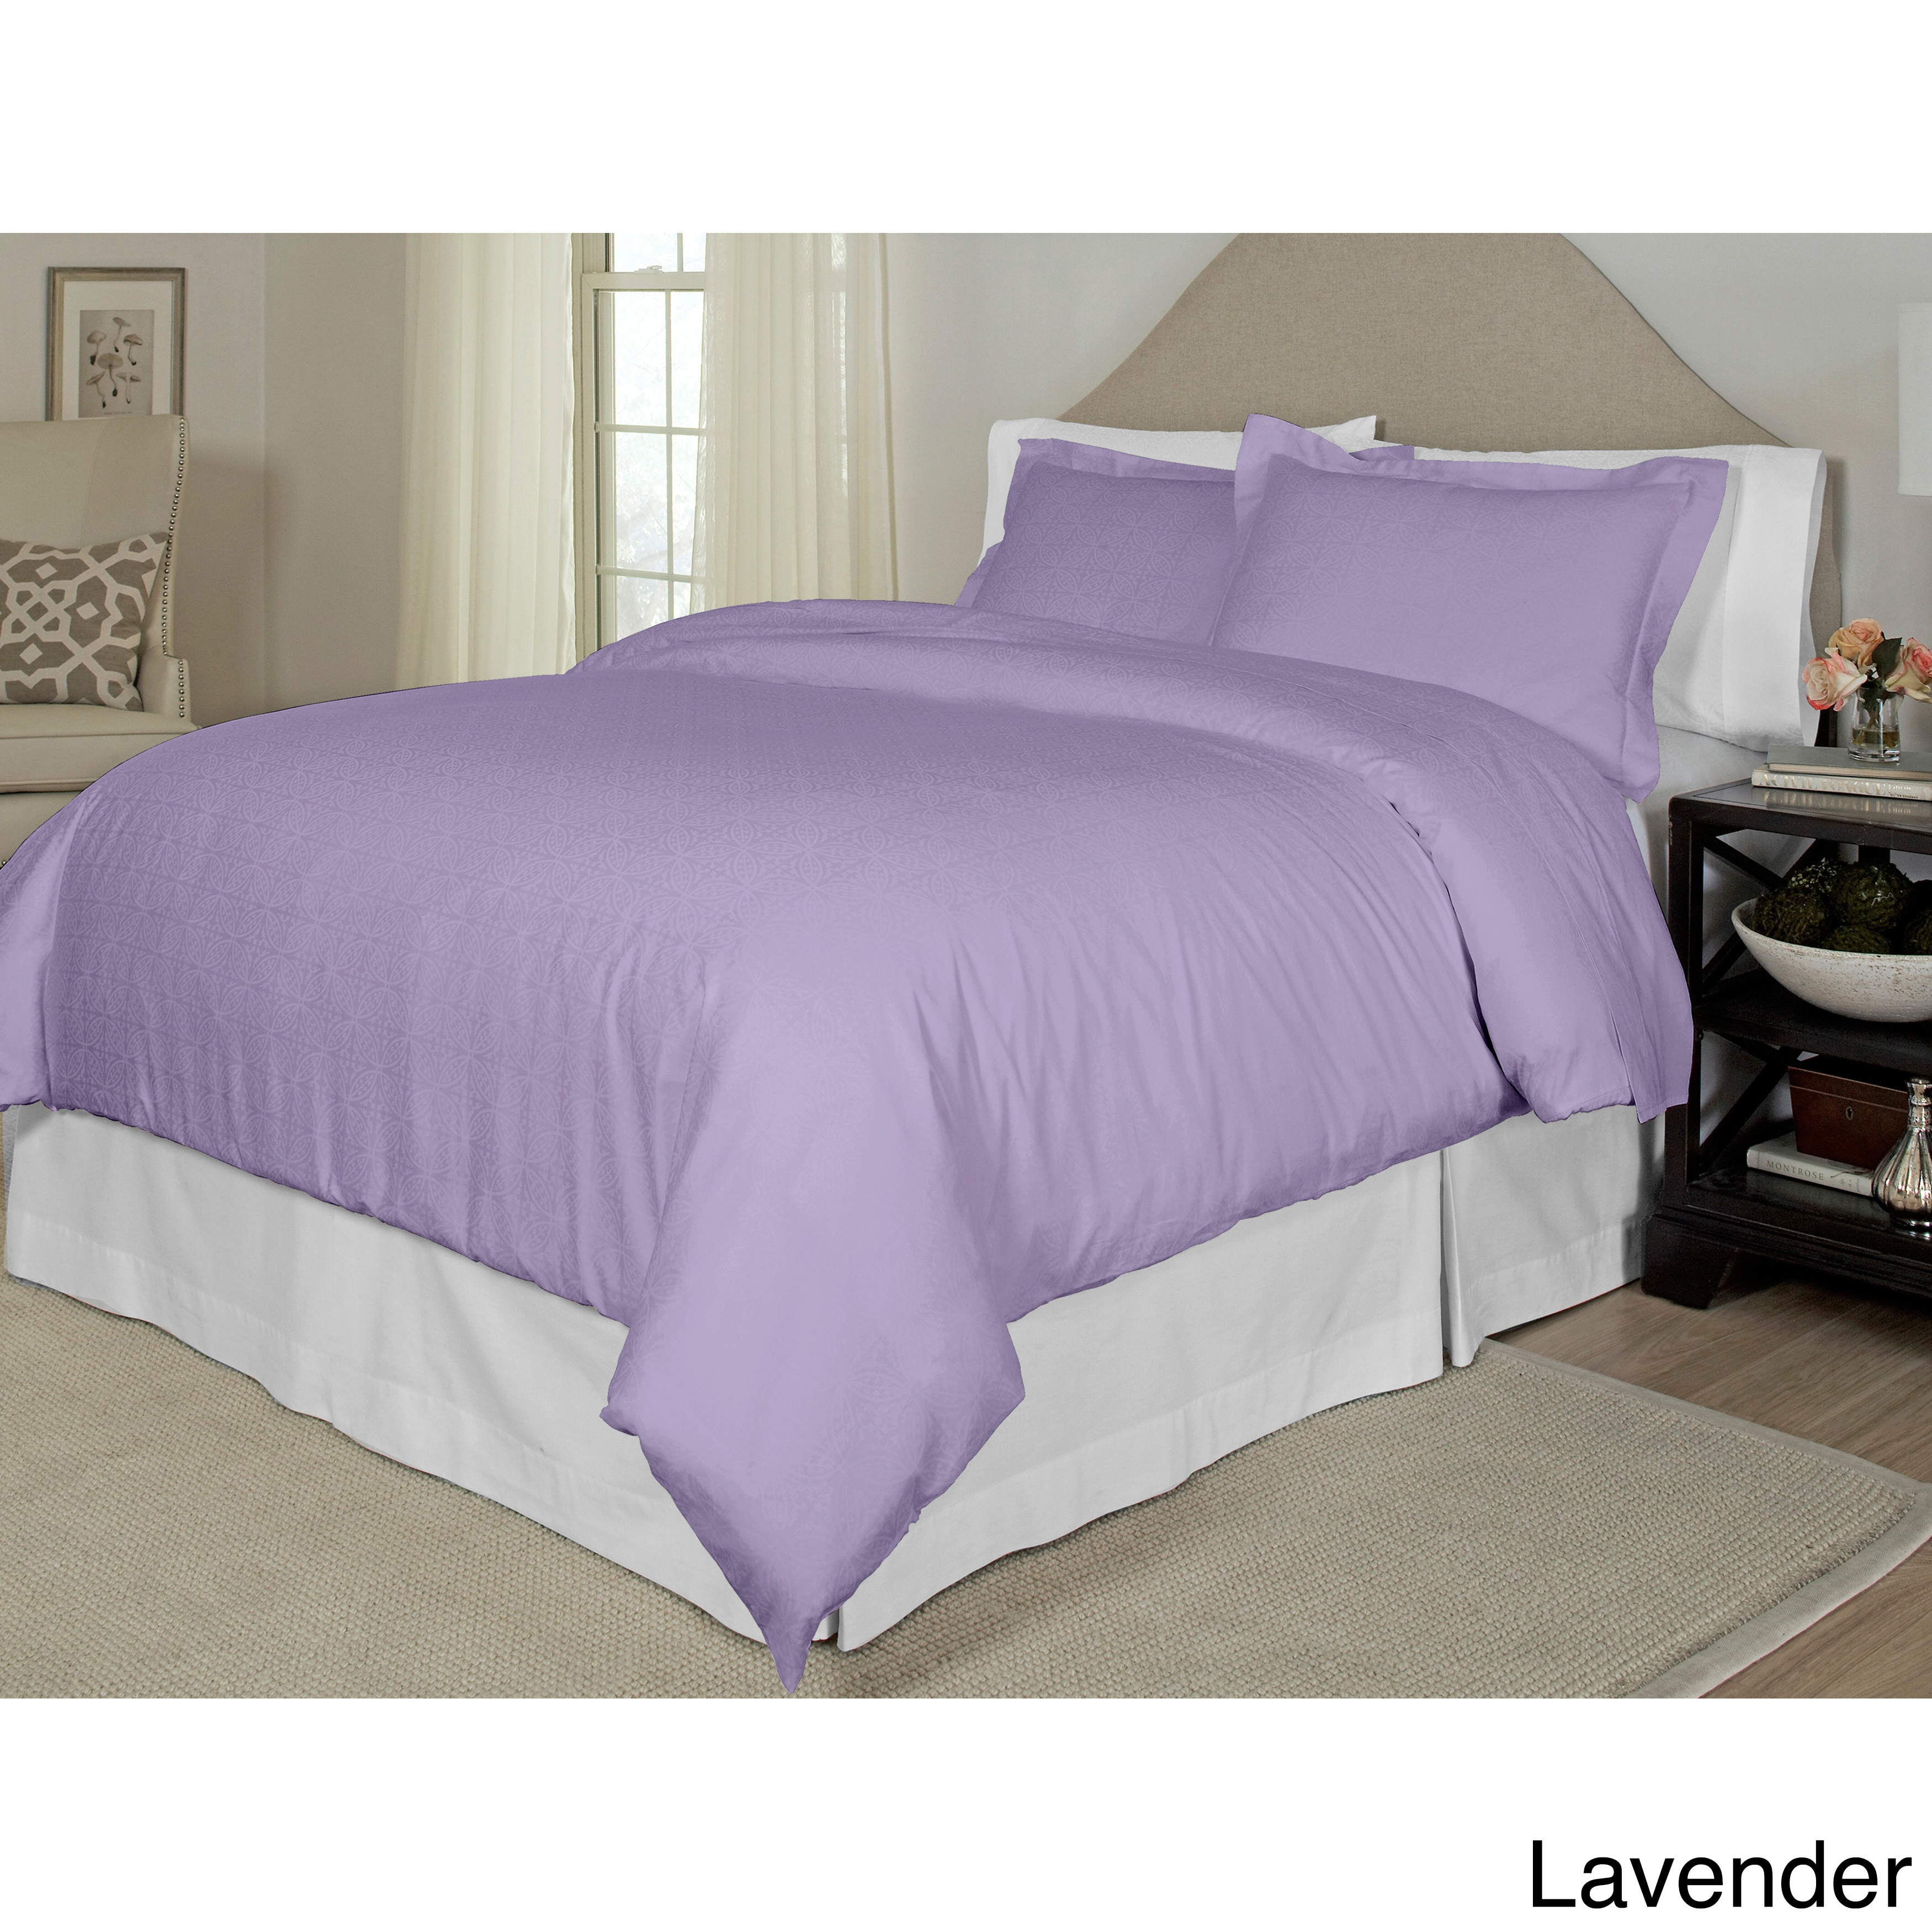 Pointhaven Tone-on-Tone Printed 3-piece Duvet Set (Full /...